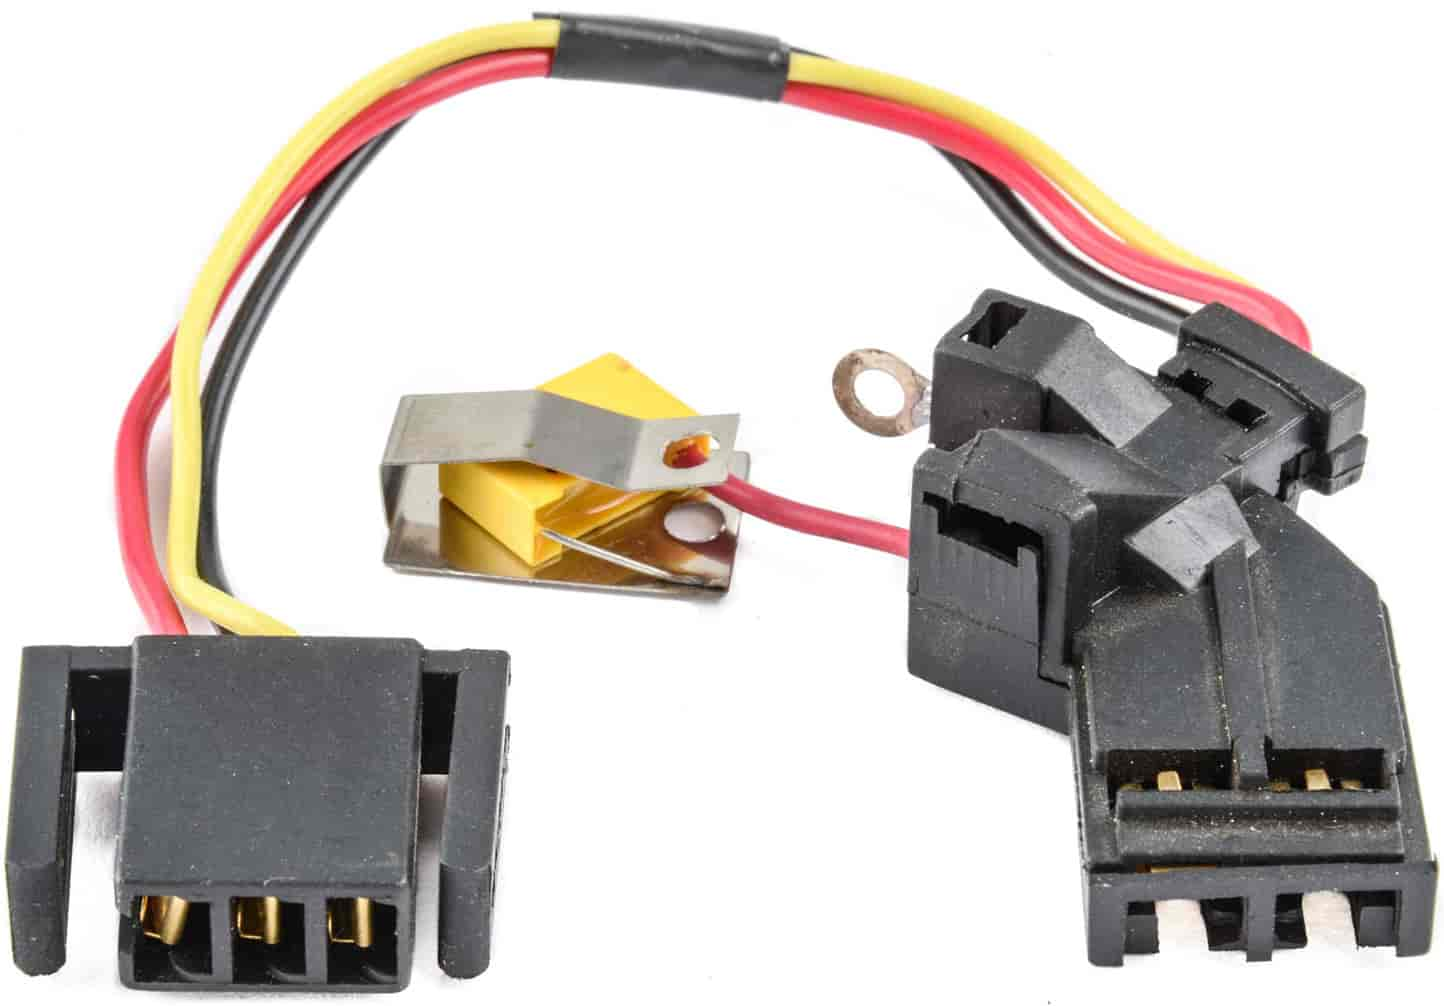 jegs hei wiring harness replaces harness that fits between cap \u0026 oe style 4 pin hei module Distributor Wiring Harness